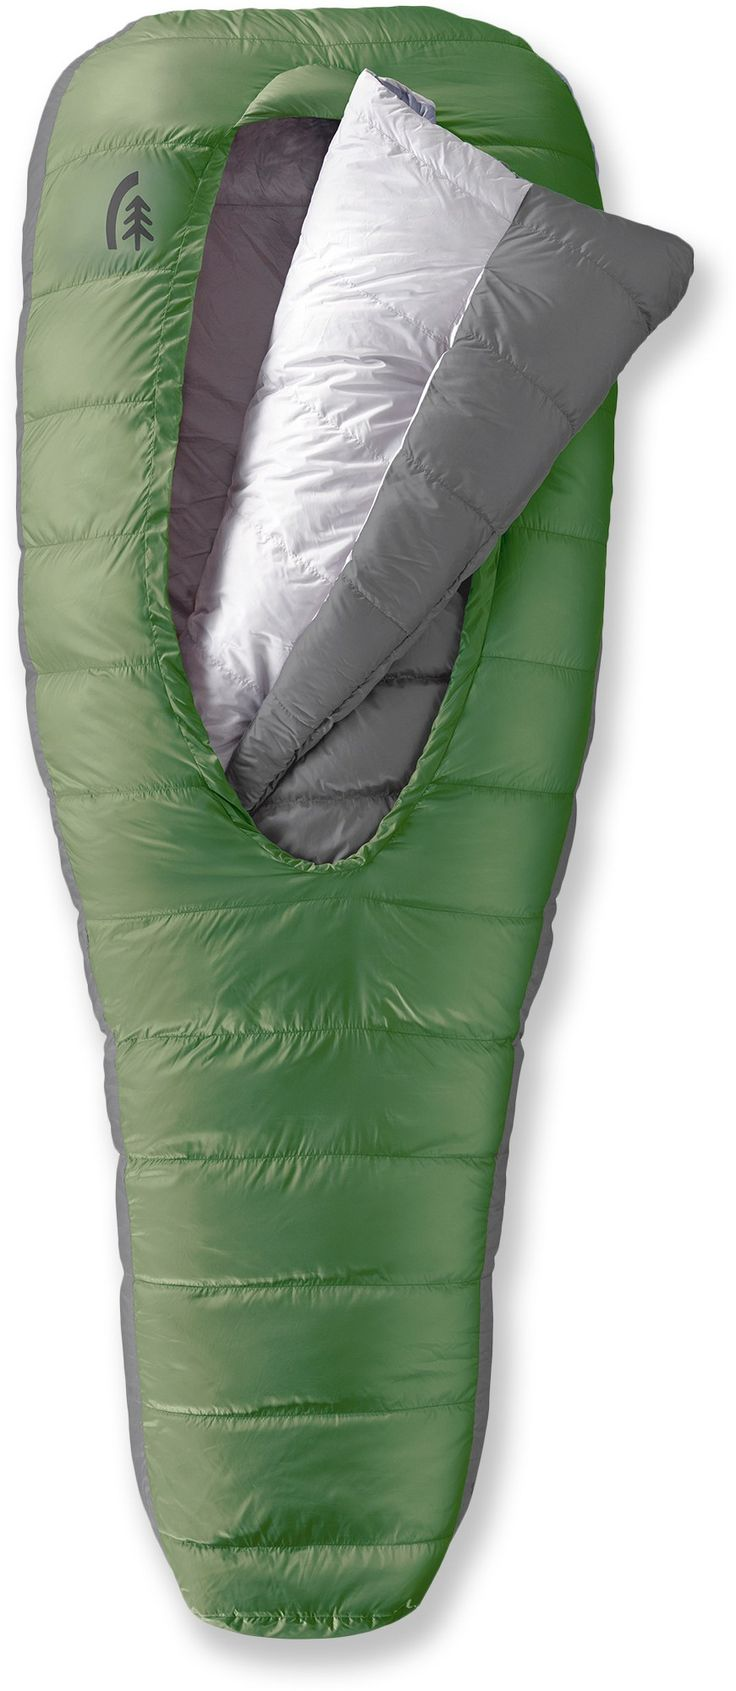 130 best images about Sleeping bags. on Pinterest